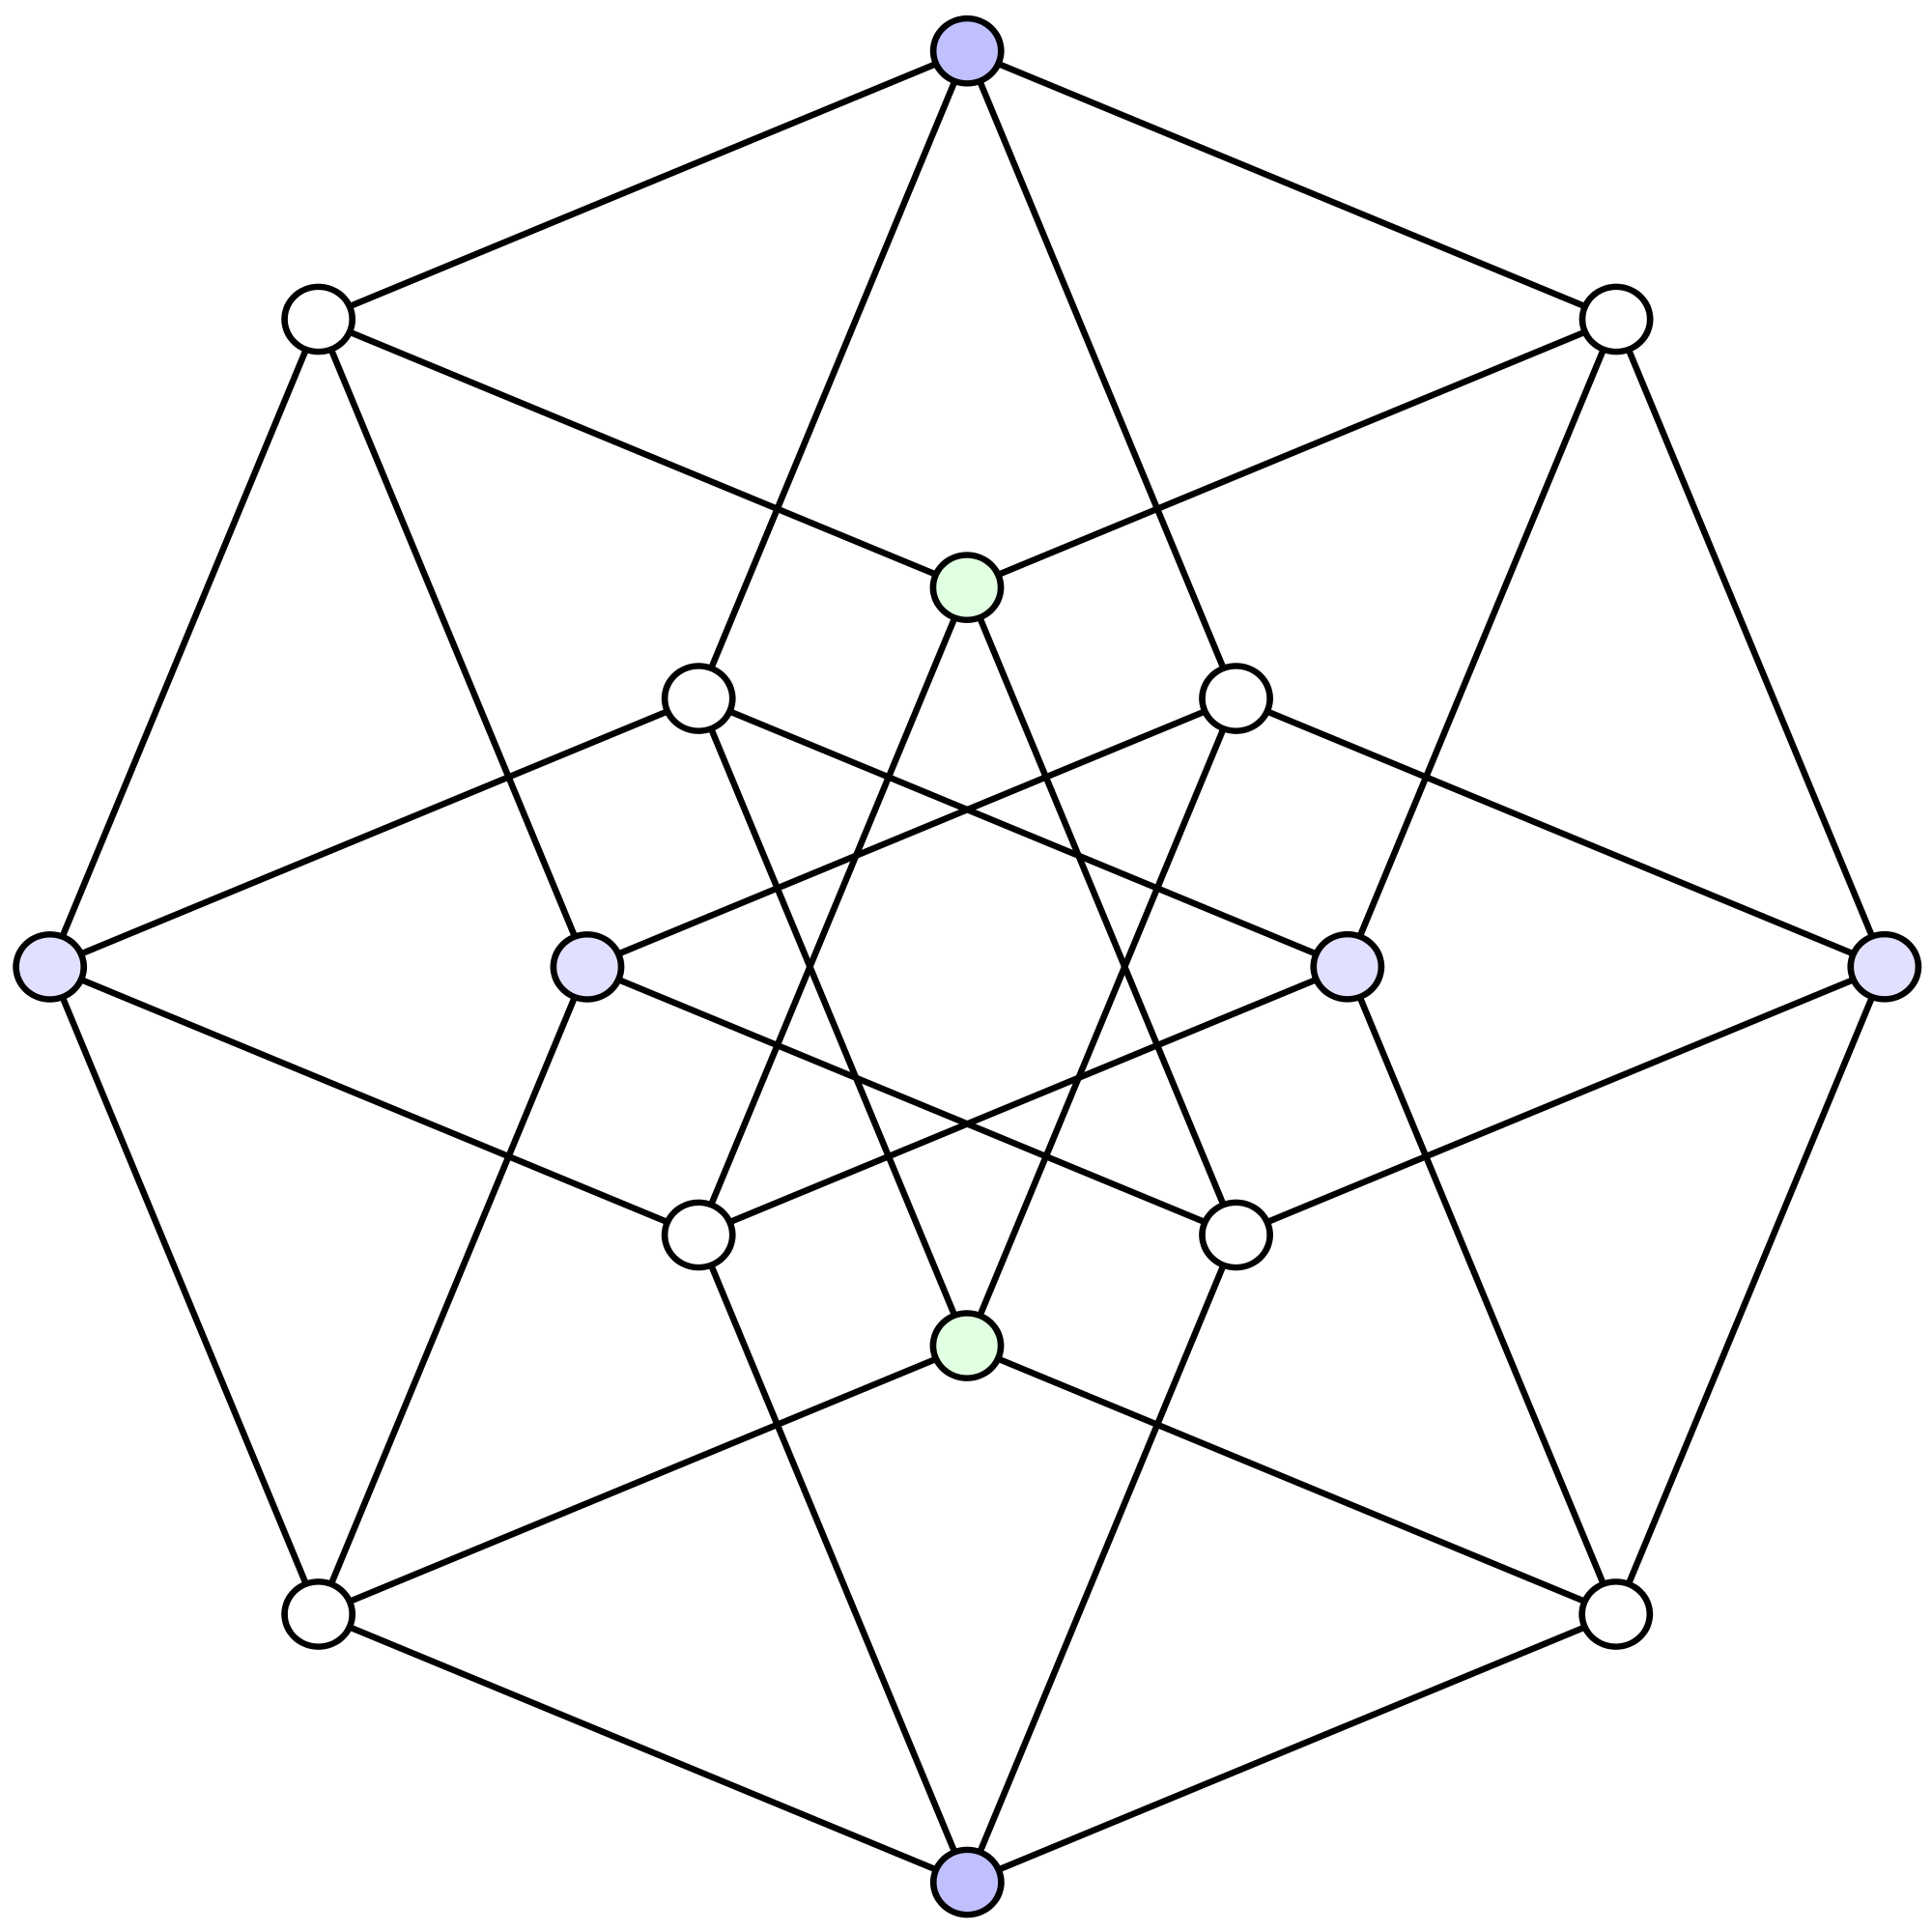 4d drawing perspective. Tesseract d projection of